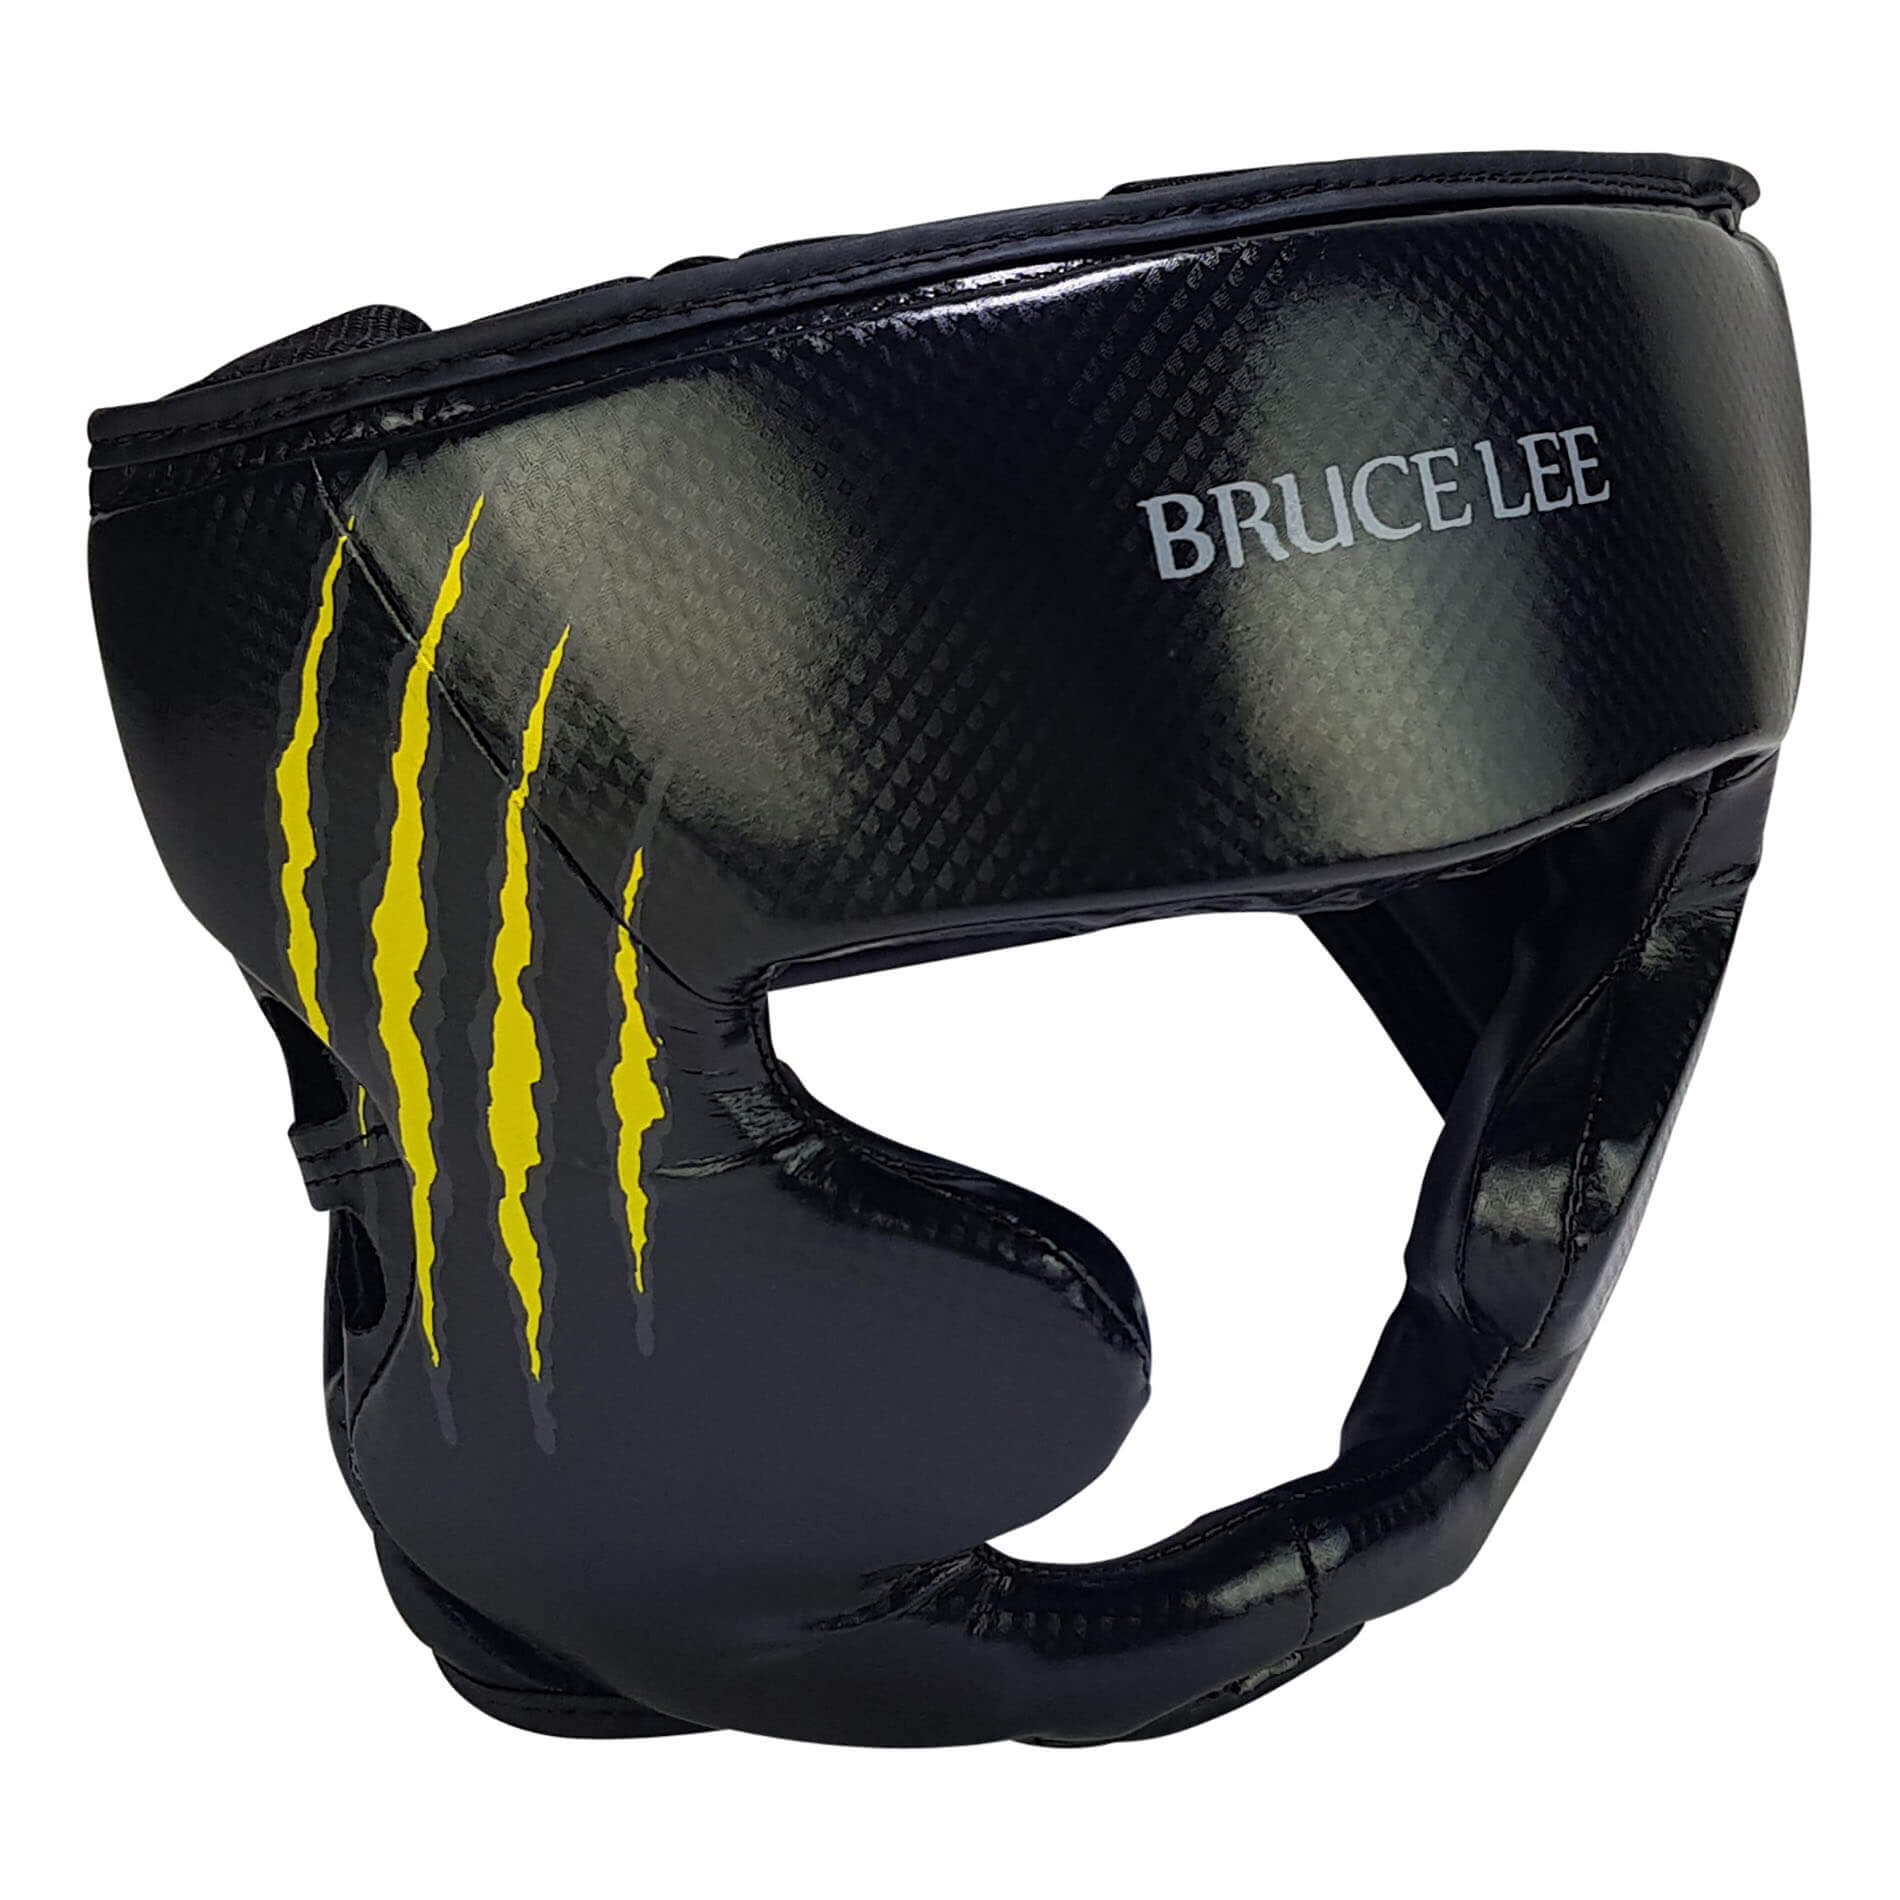 Signature Head Guard